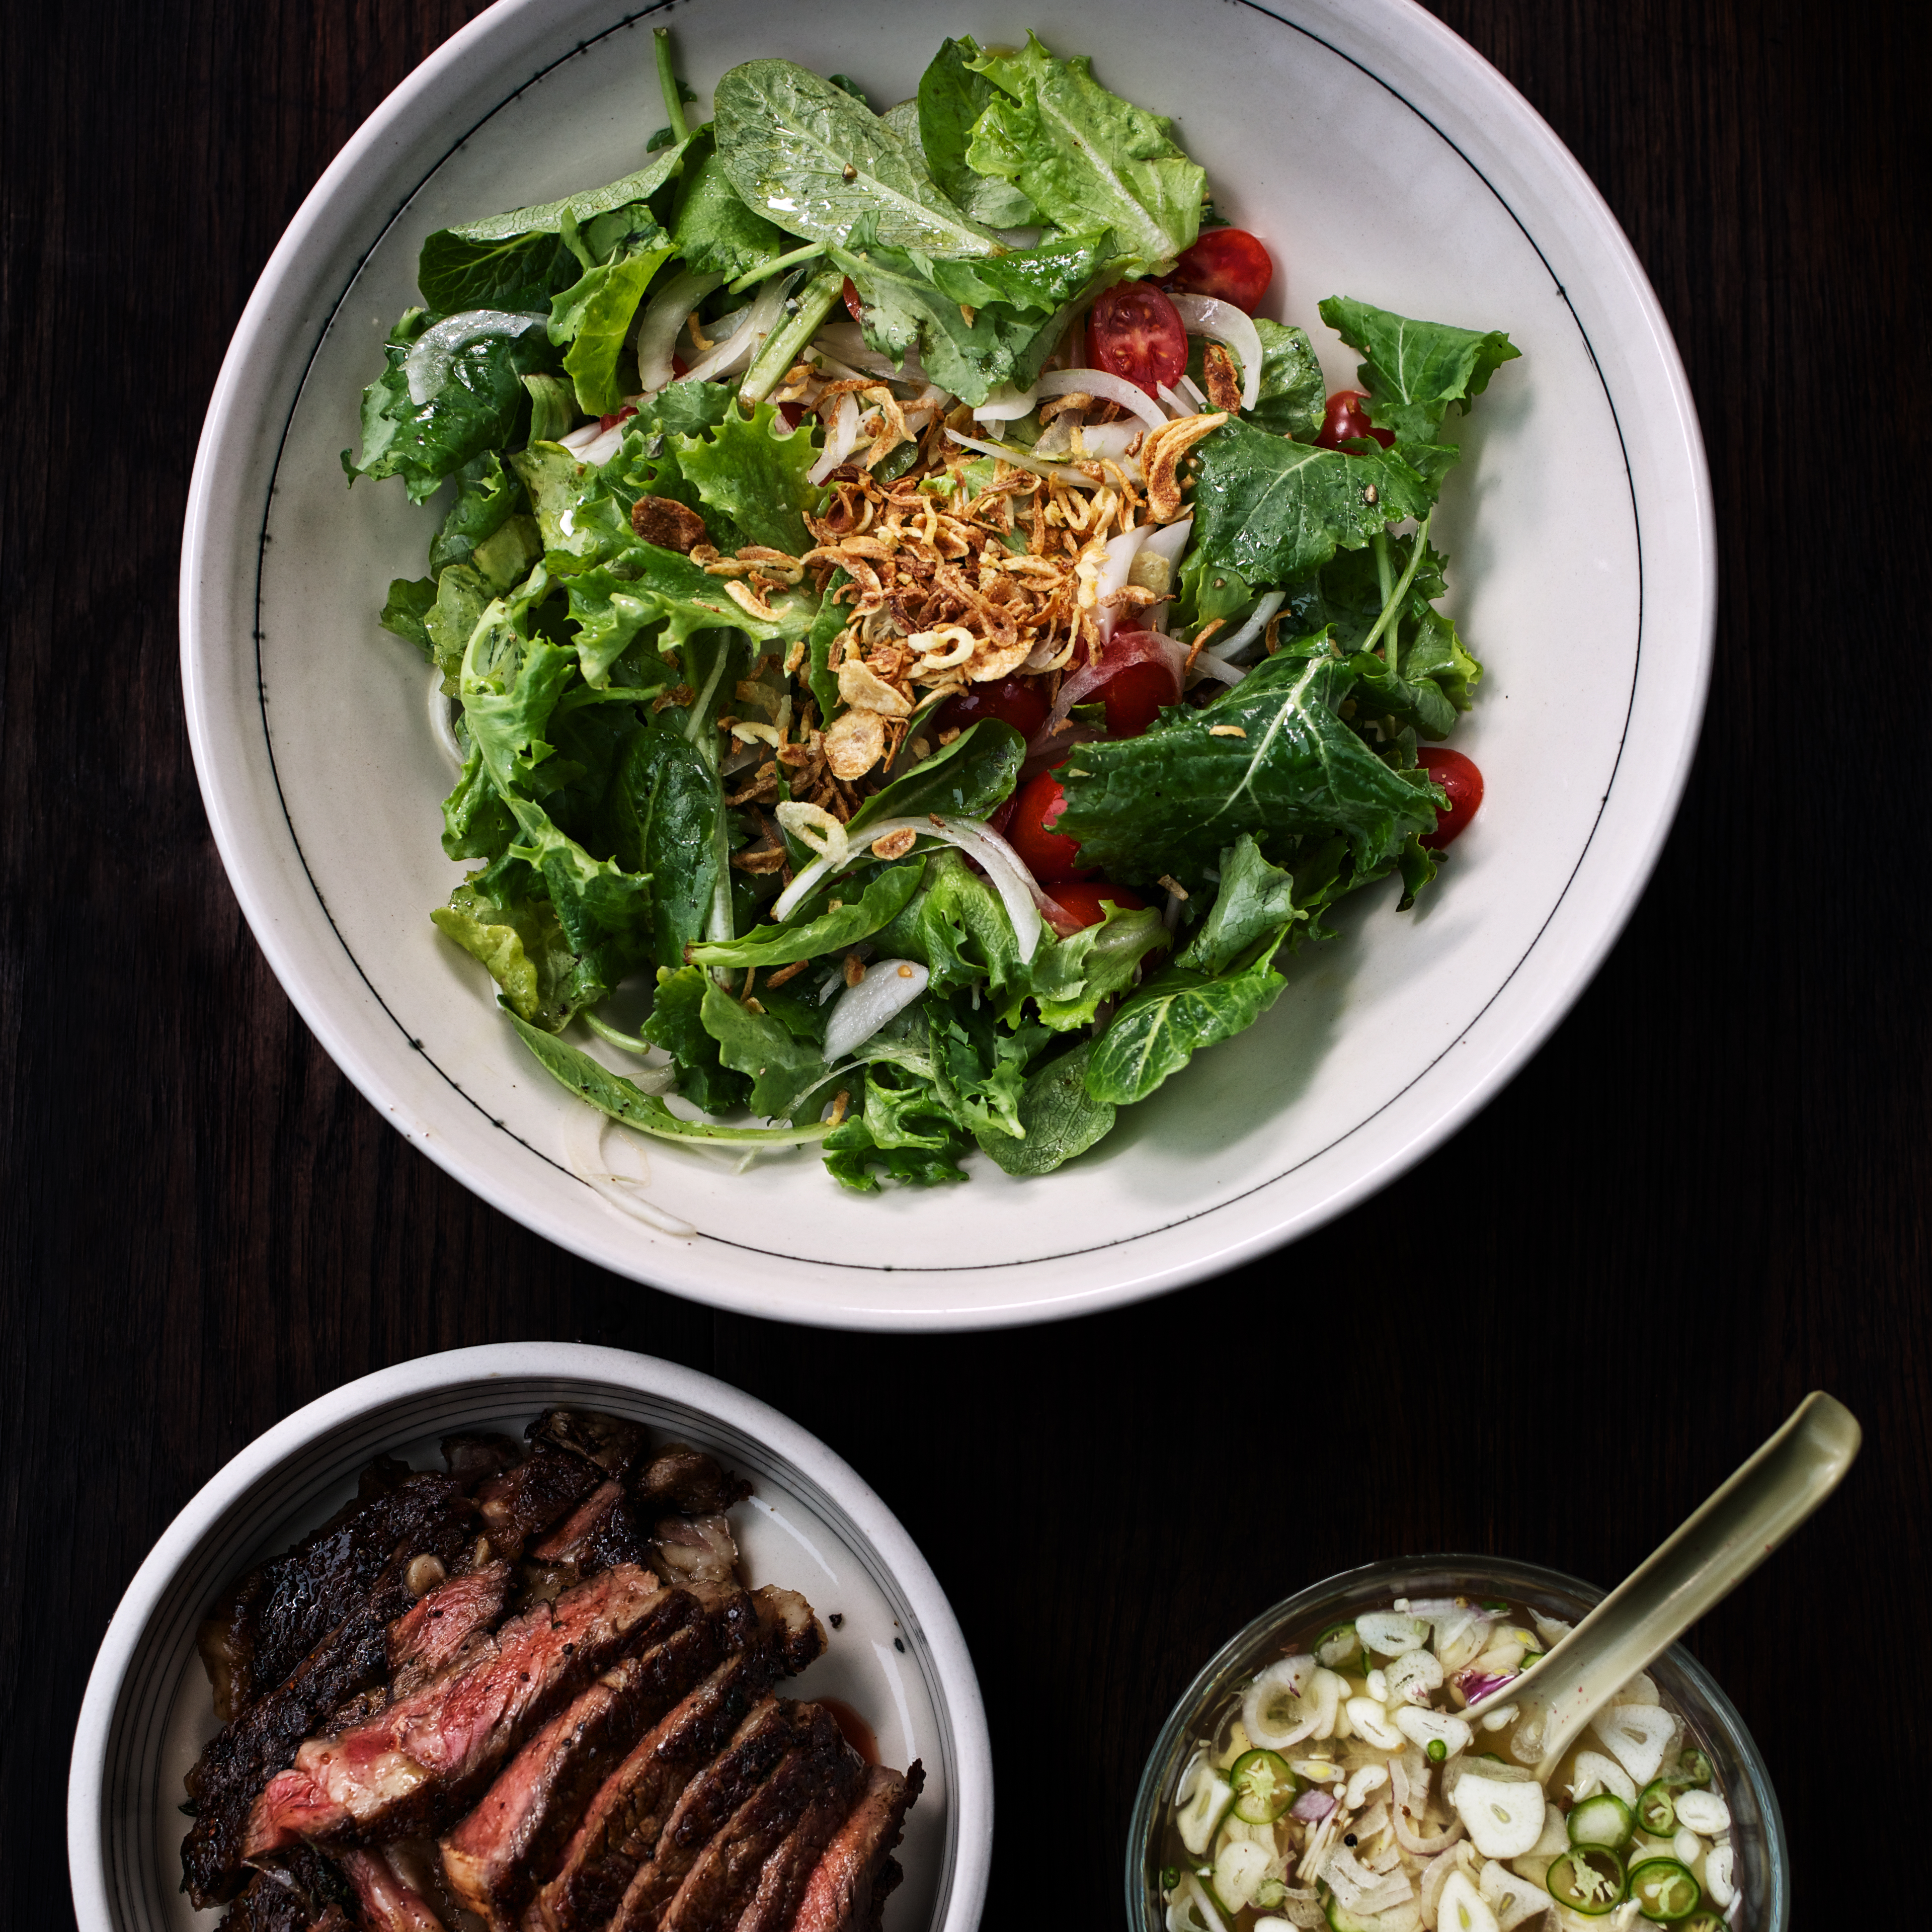 Rib eye steak with onions tomato recipesbnb baby kale and steak salad recipepaul qui food wine forumfinder Images